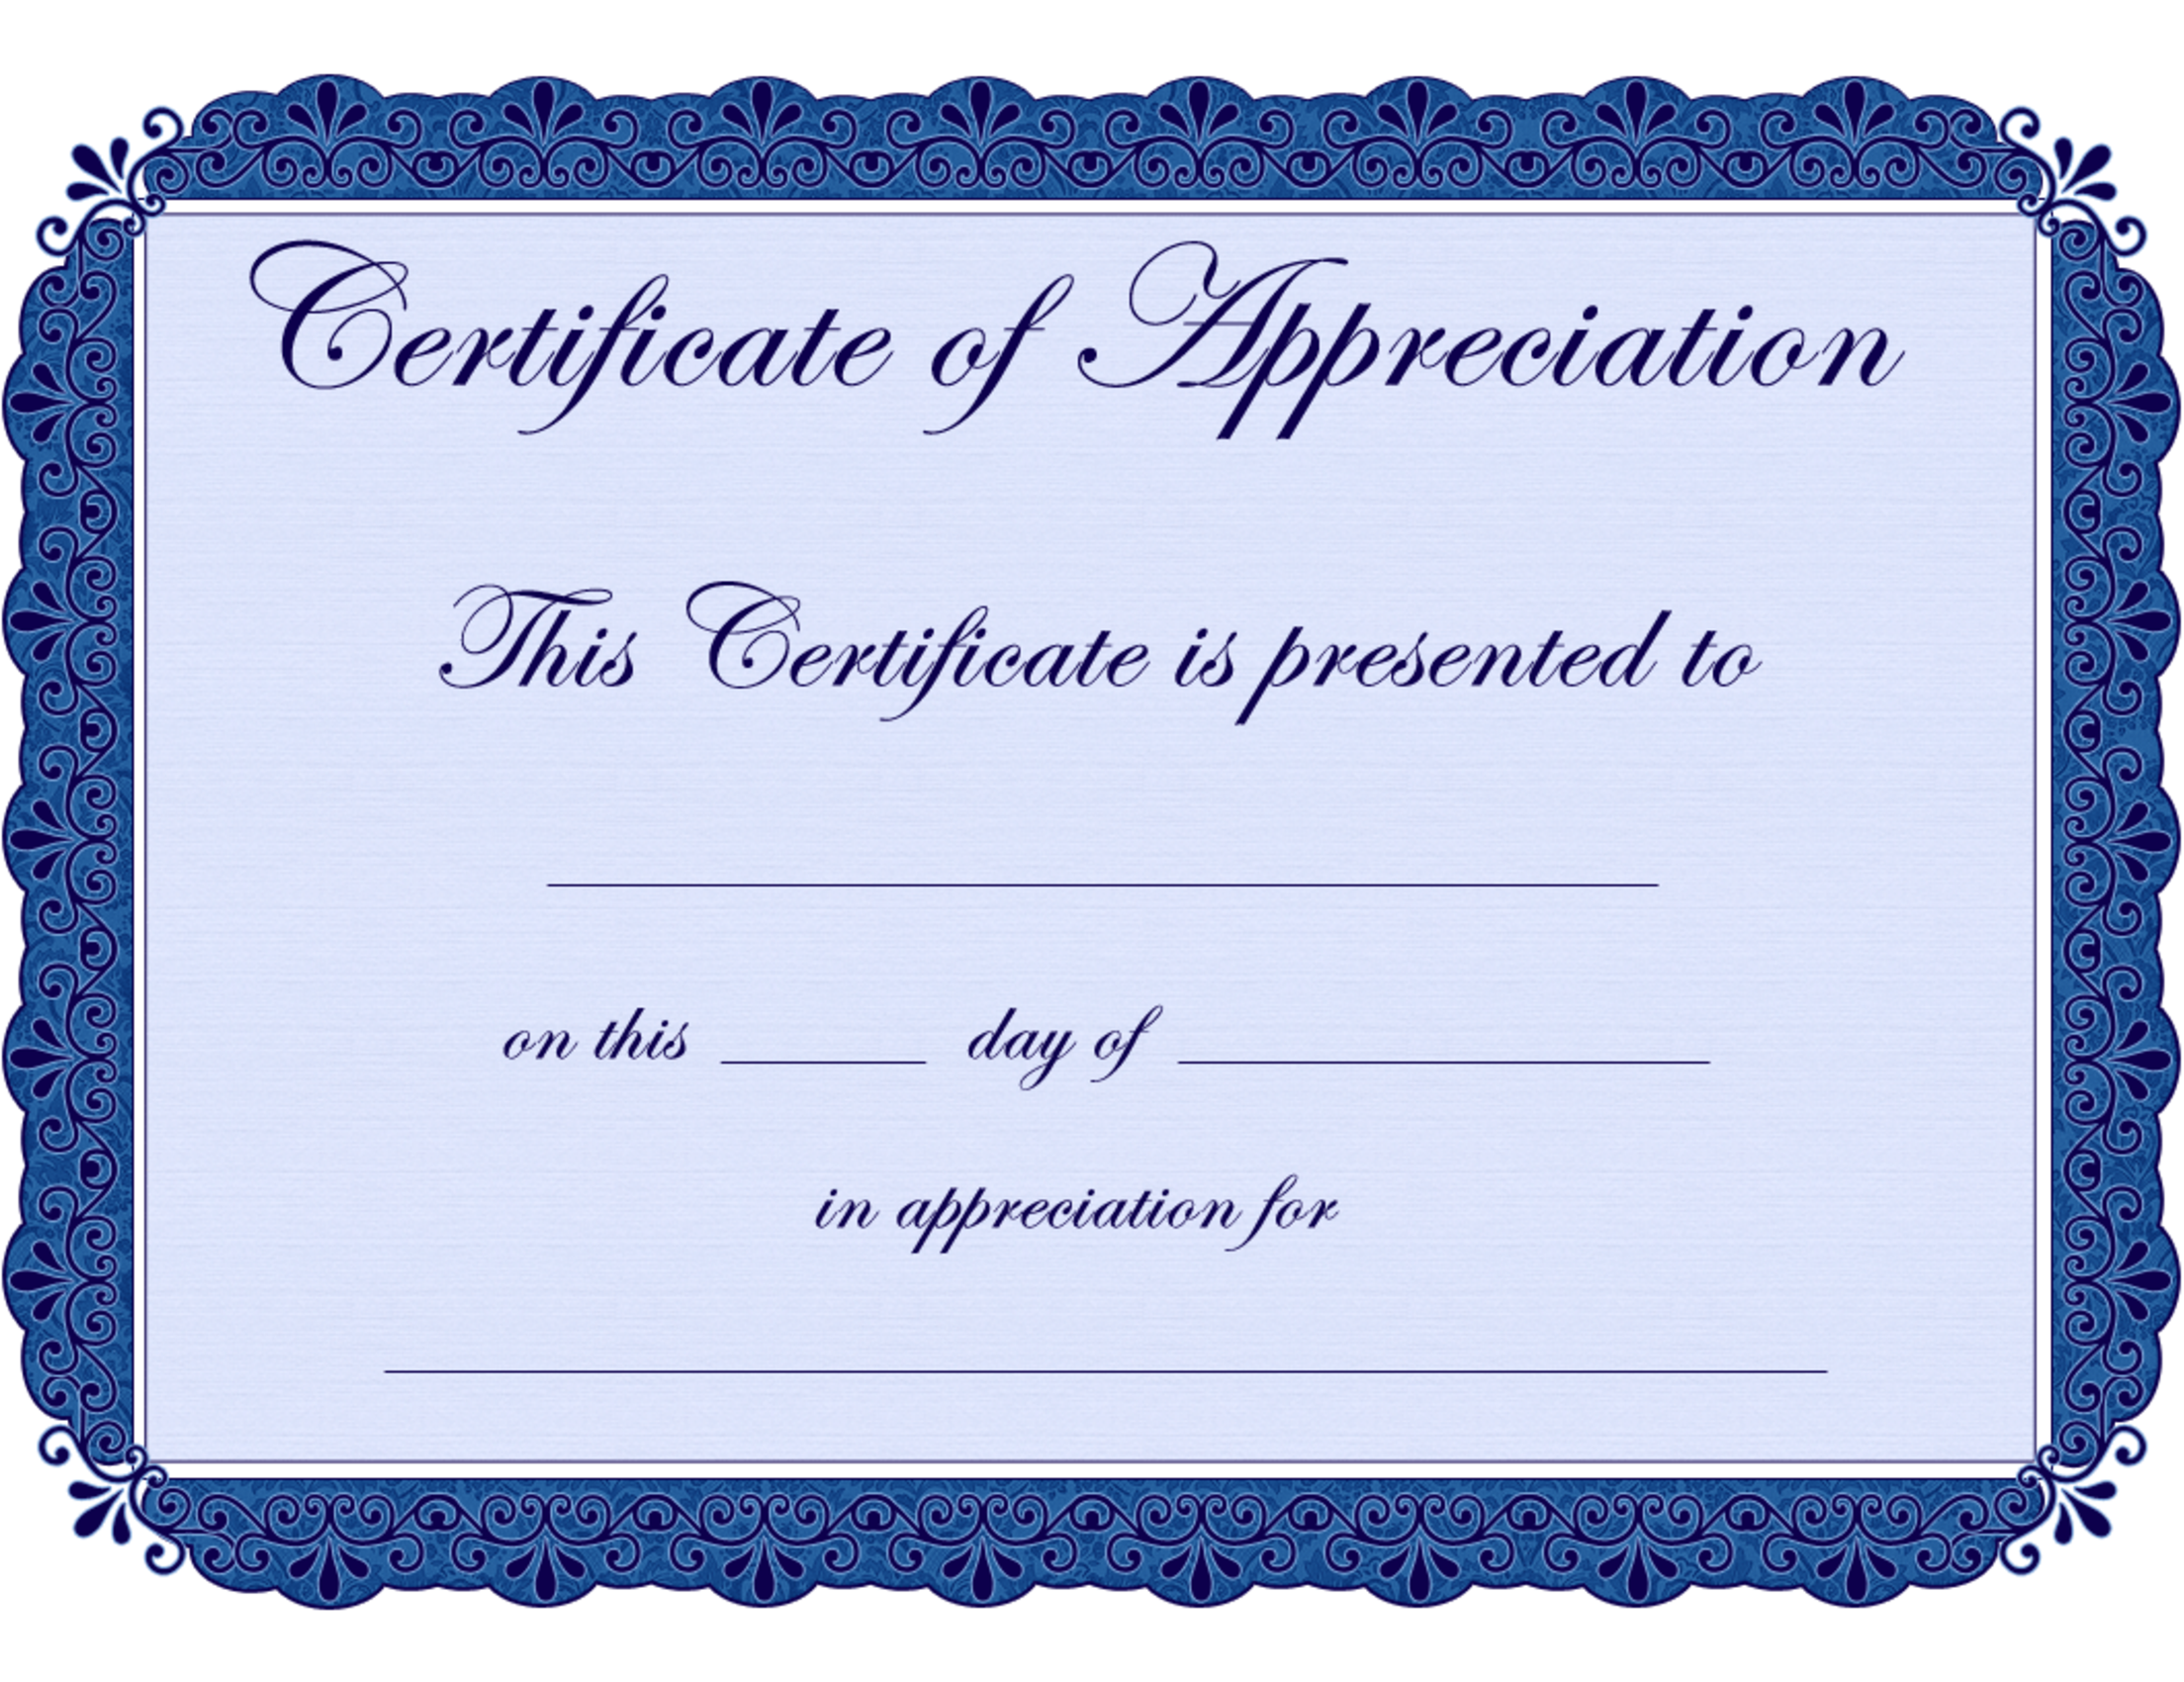 Free printable certificates certificate of appreciation certificate free printable certificates certificate of appreciation certificate free gift certificate templatefree yadclub Image collections